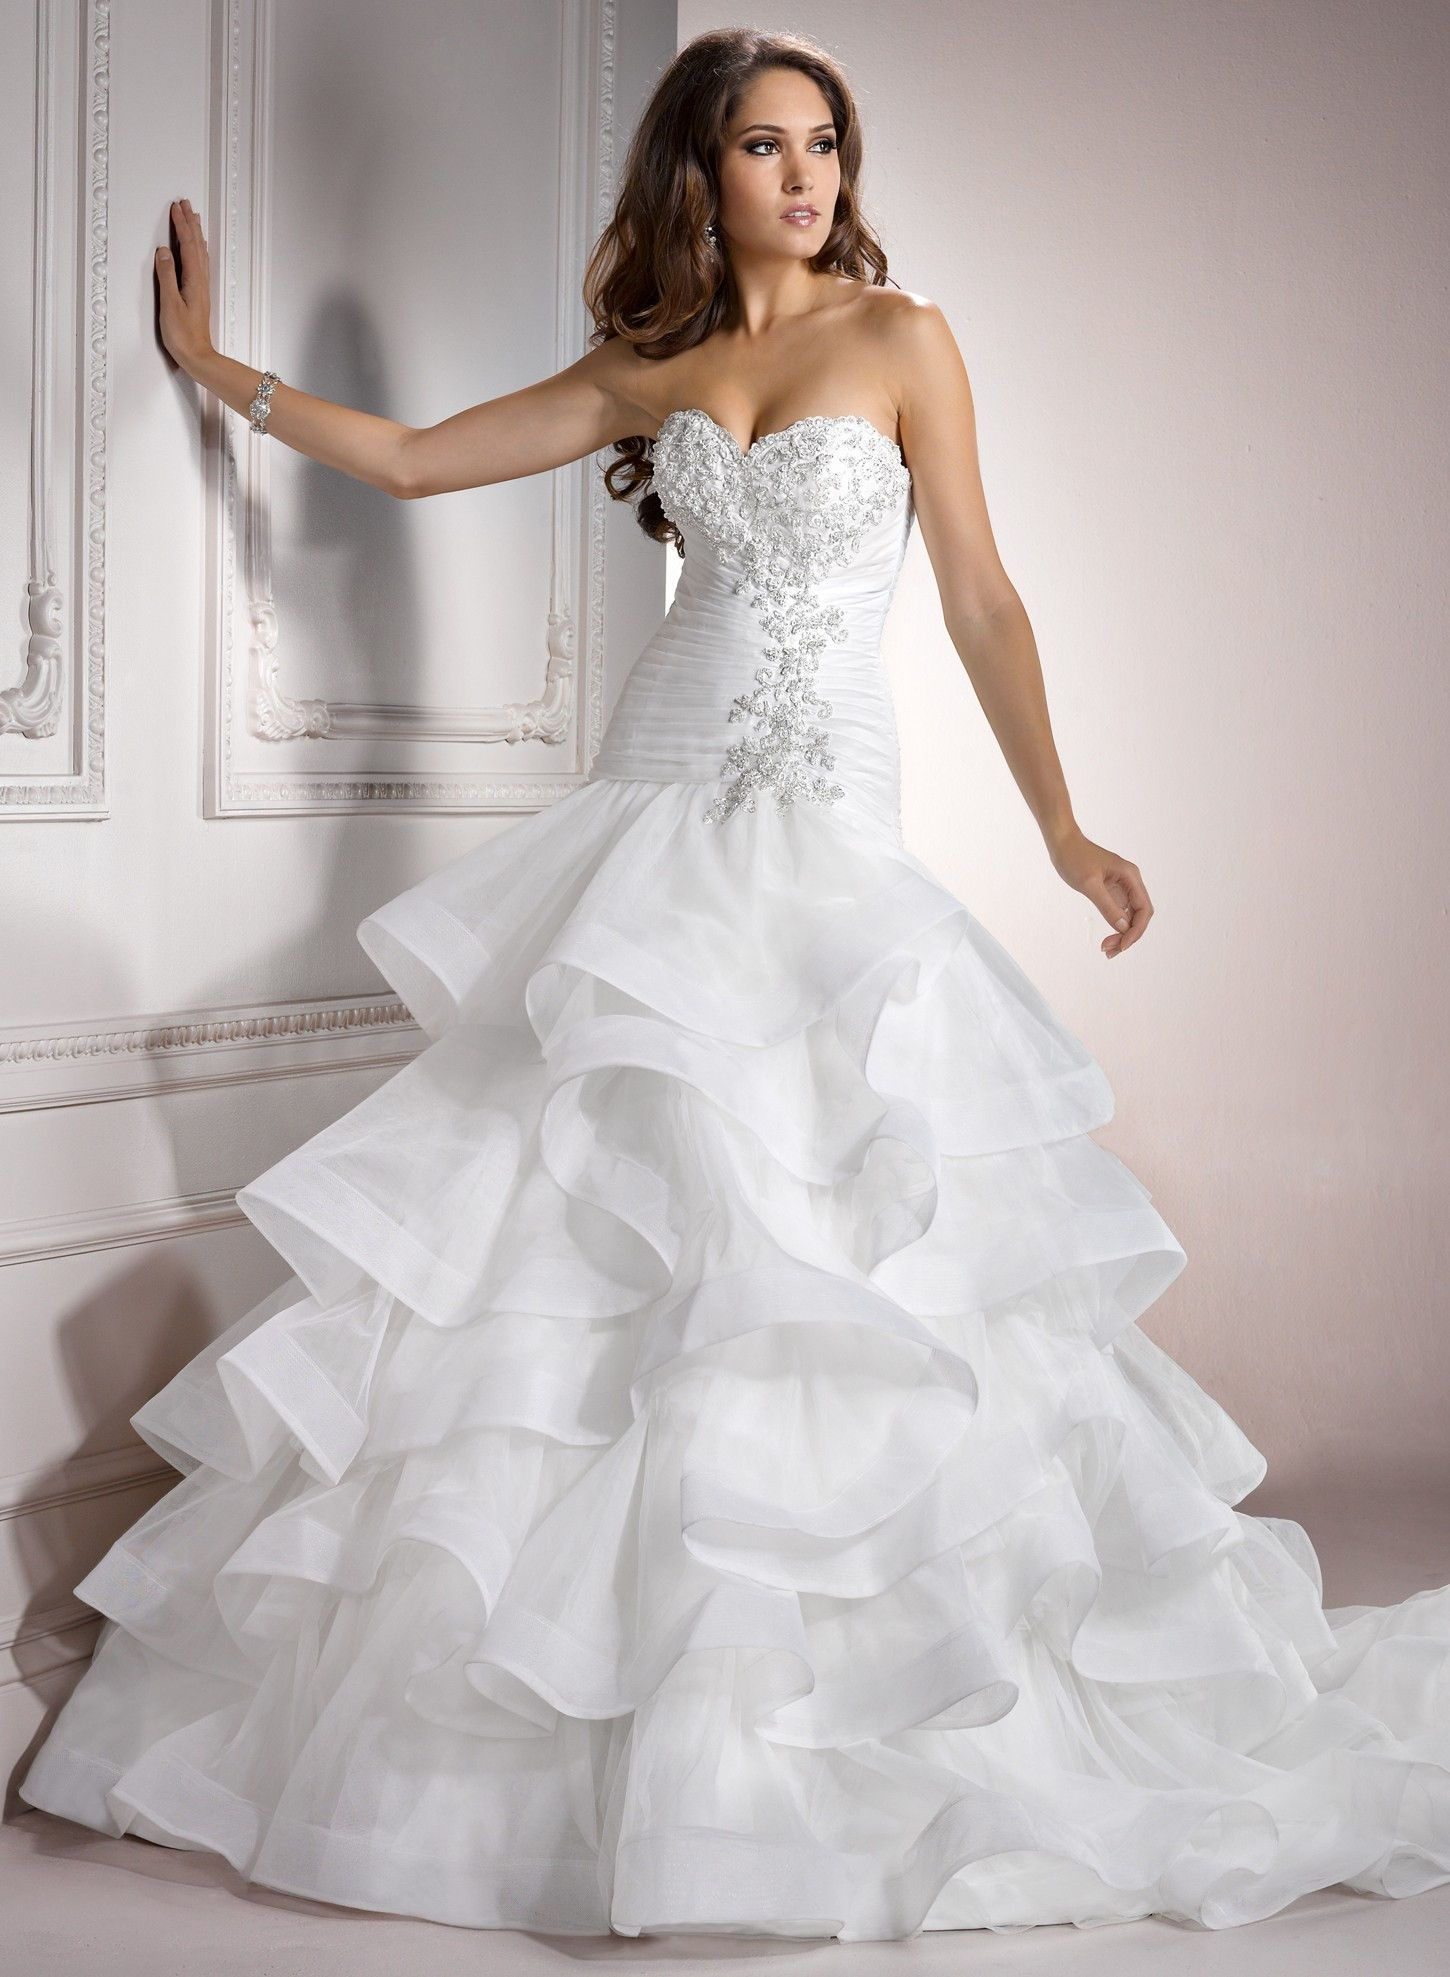 wedding-dresses-ball-gown-sparkly-51.jpg (1450×1977) | Ideas for ...